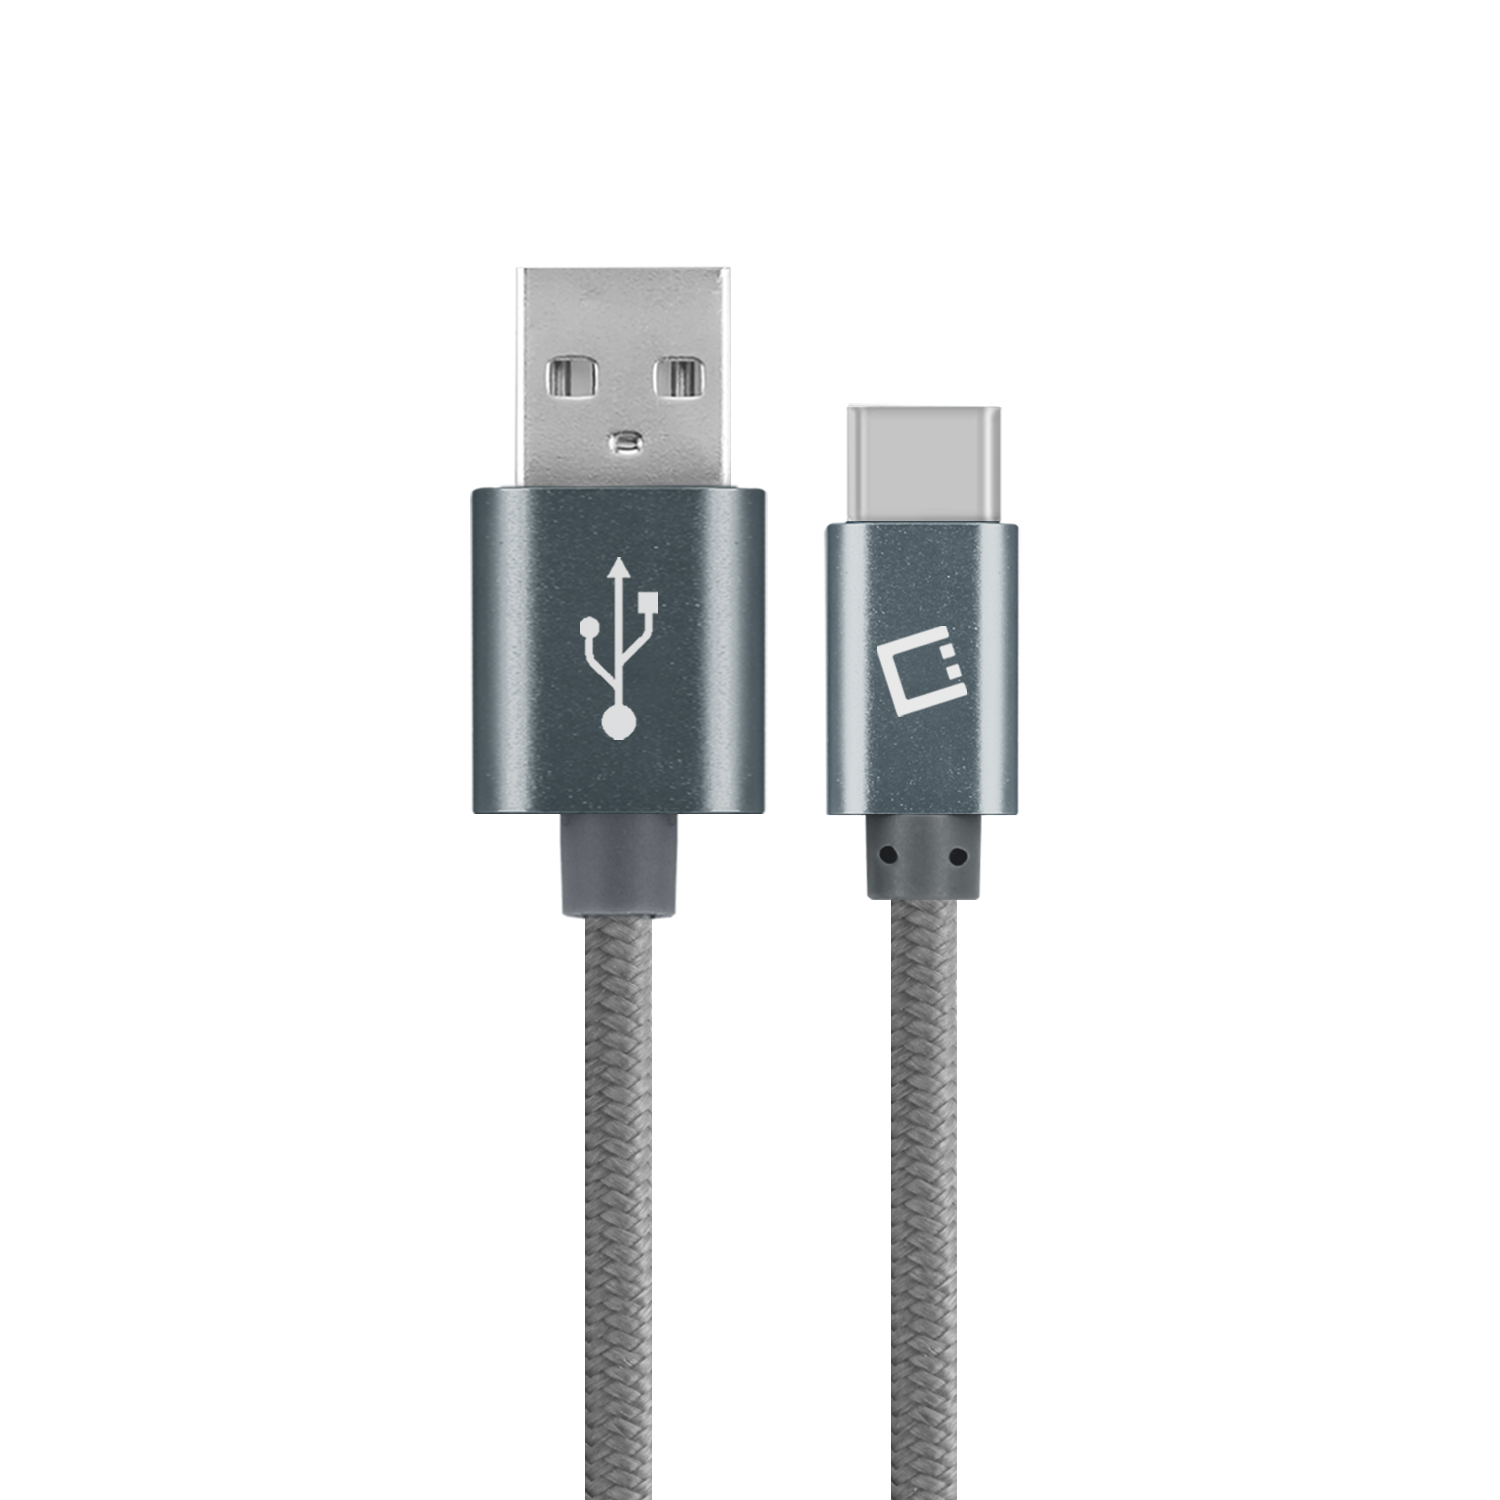 Samsung Galaxy A50 USB Type-C To Type-A Braided Data Power Cable Grey 10ft Braided